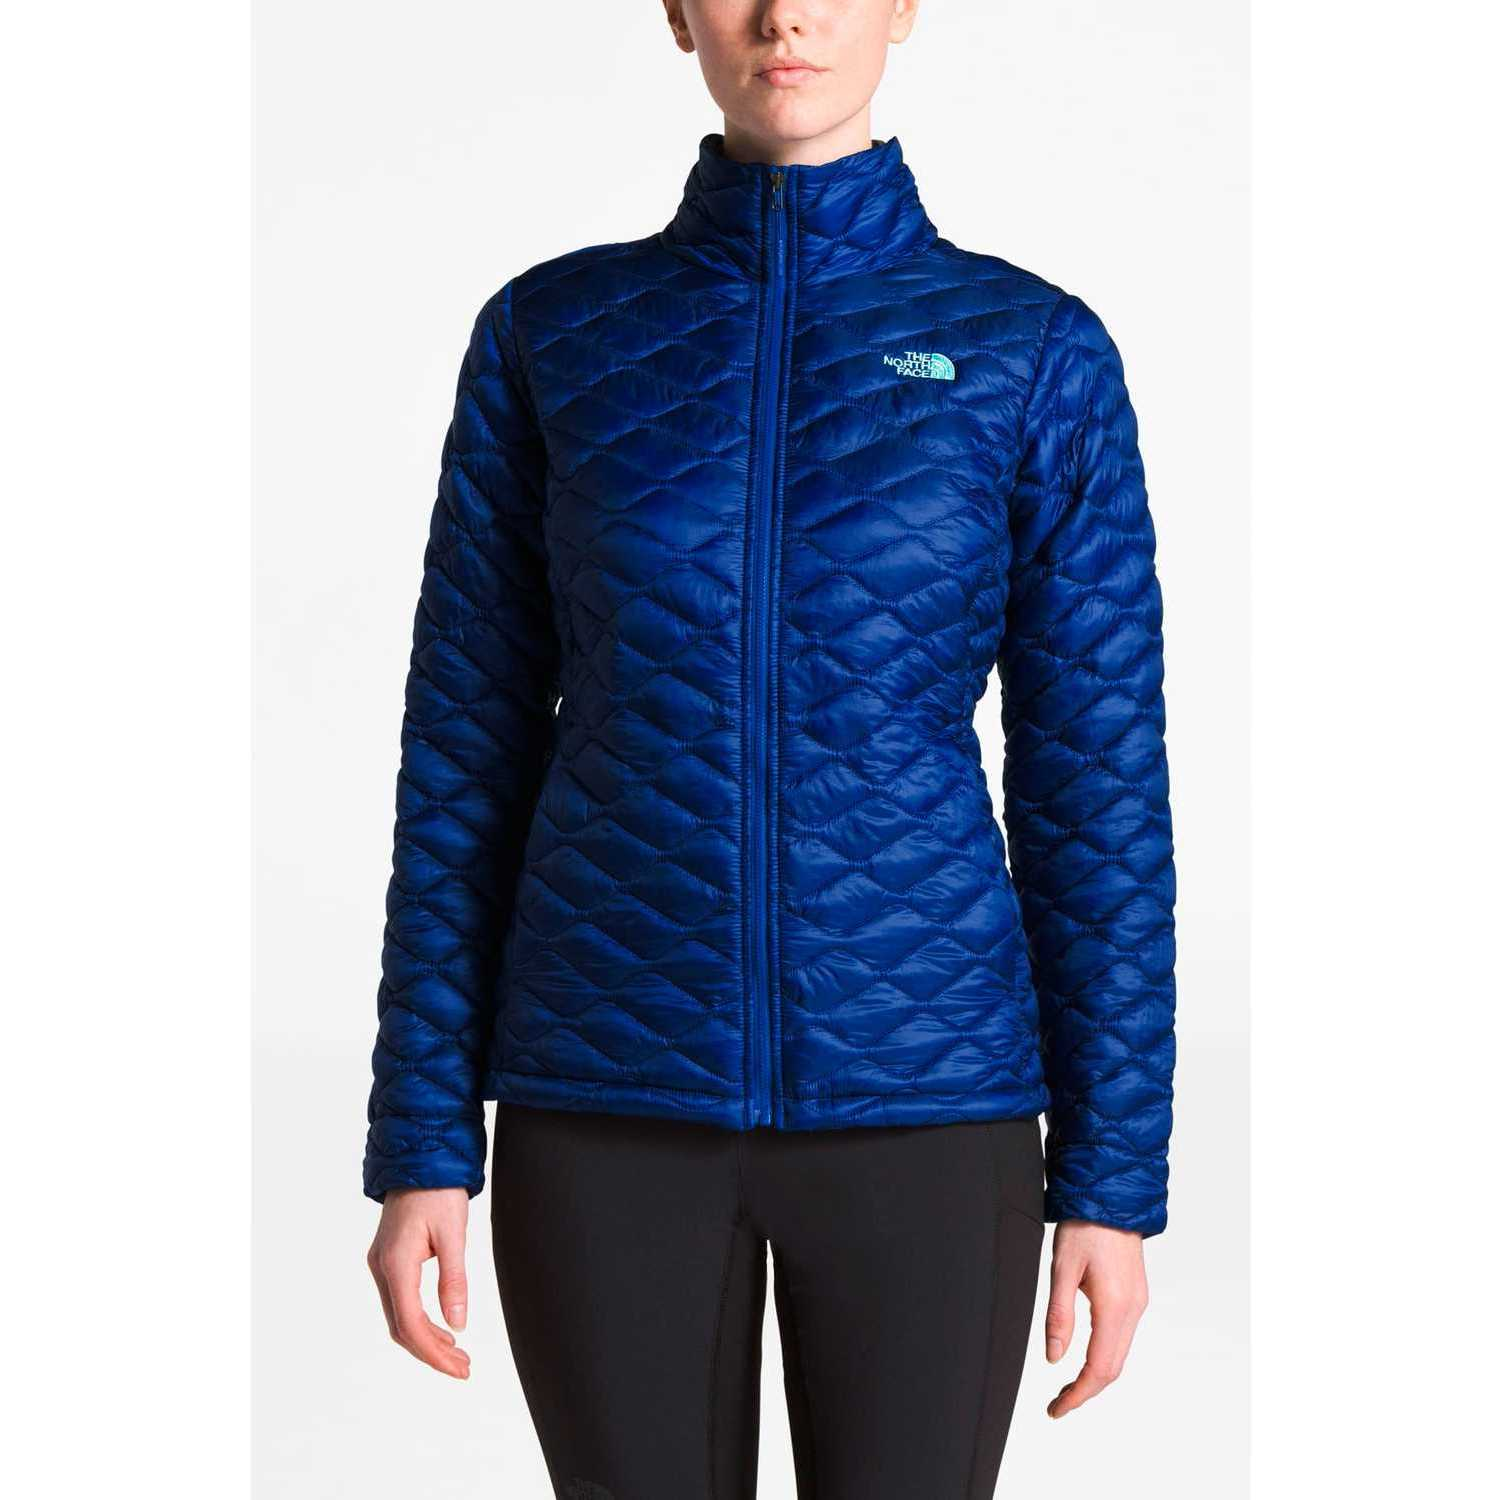 The North Face w thermoball jacket Azul Plumas y alternos